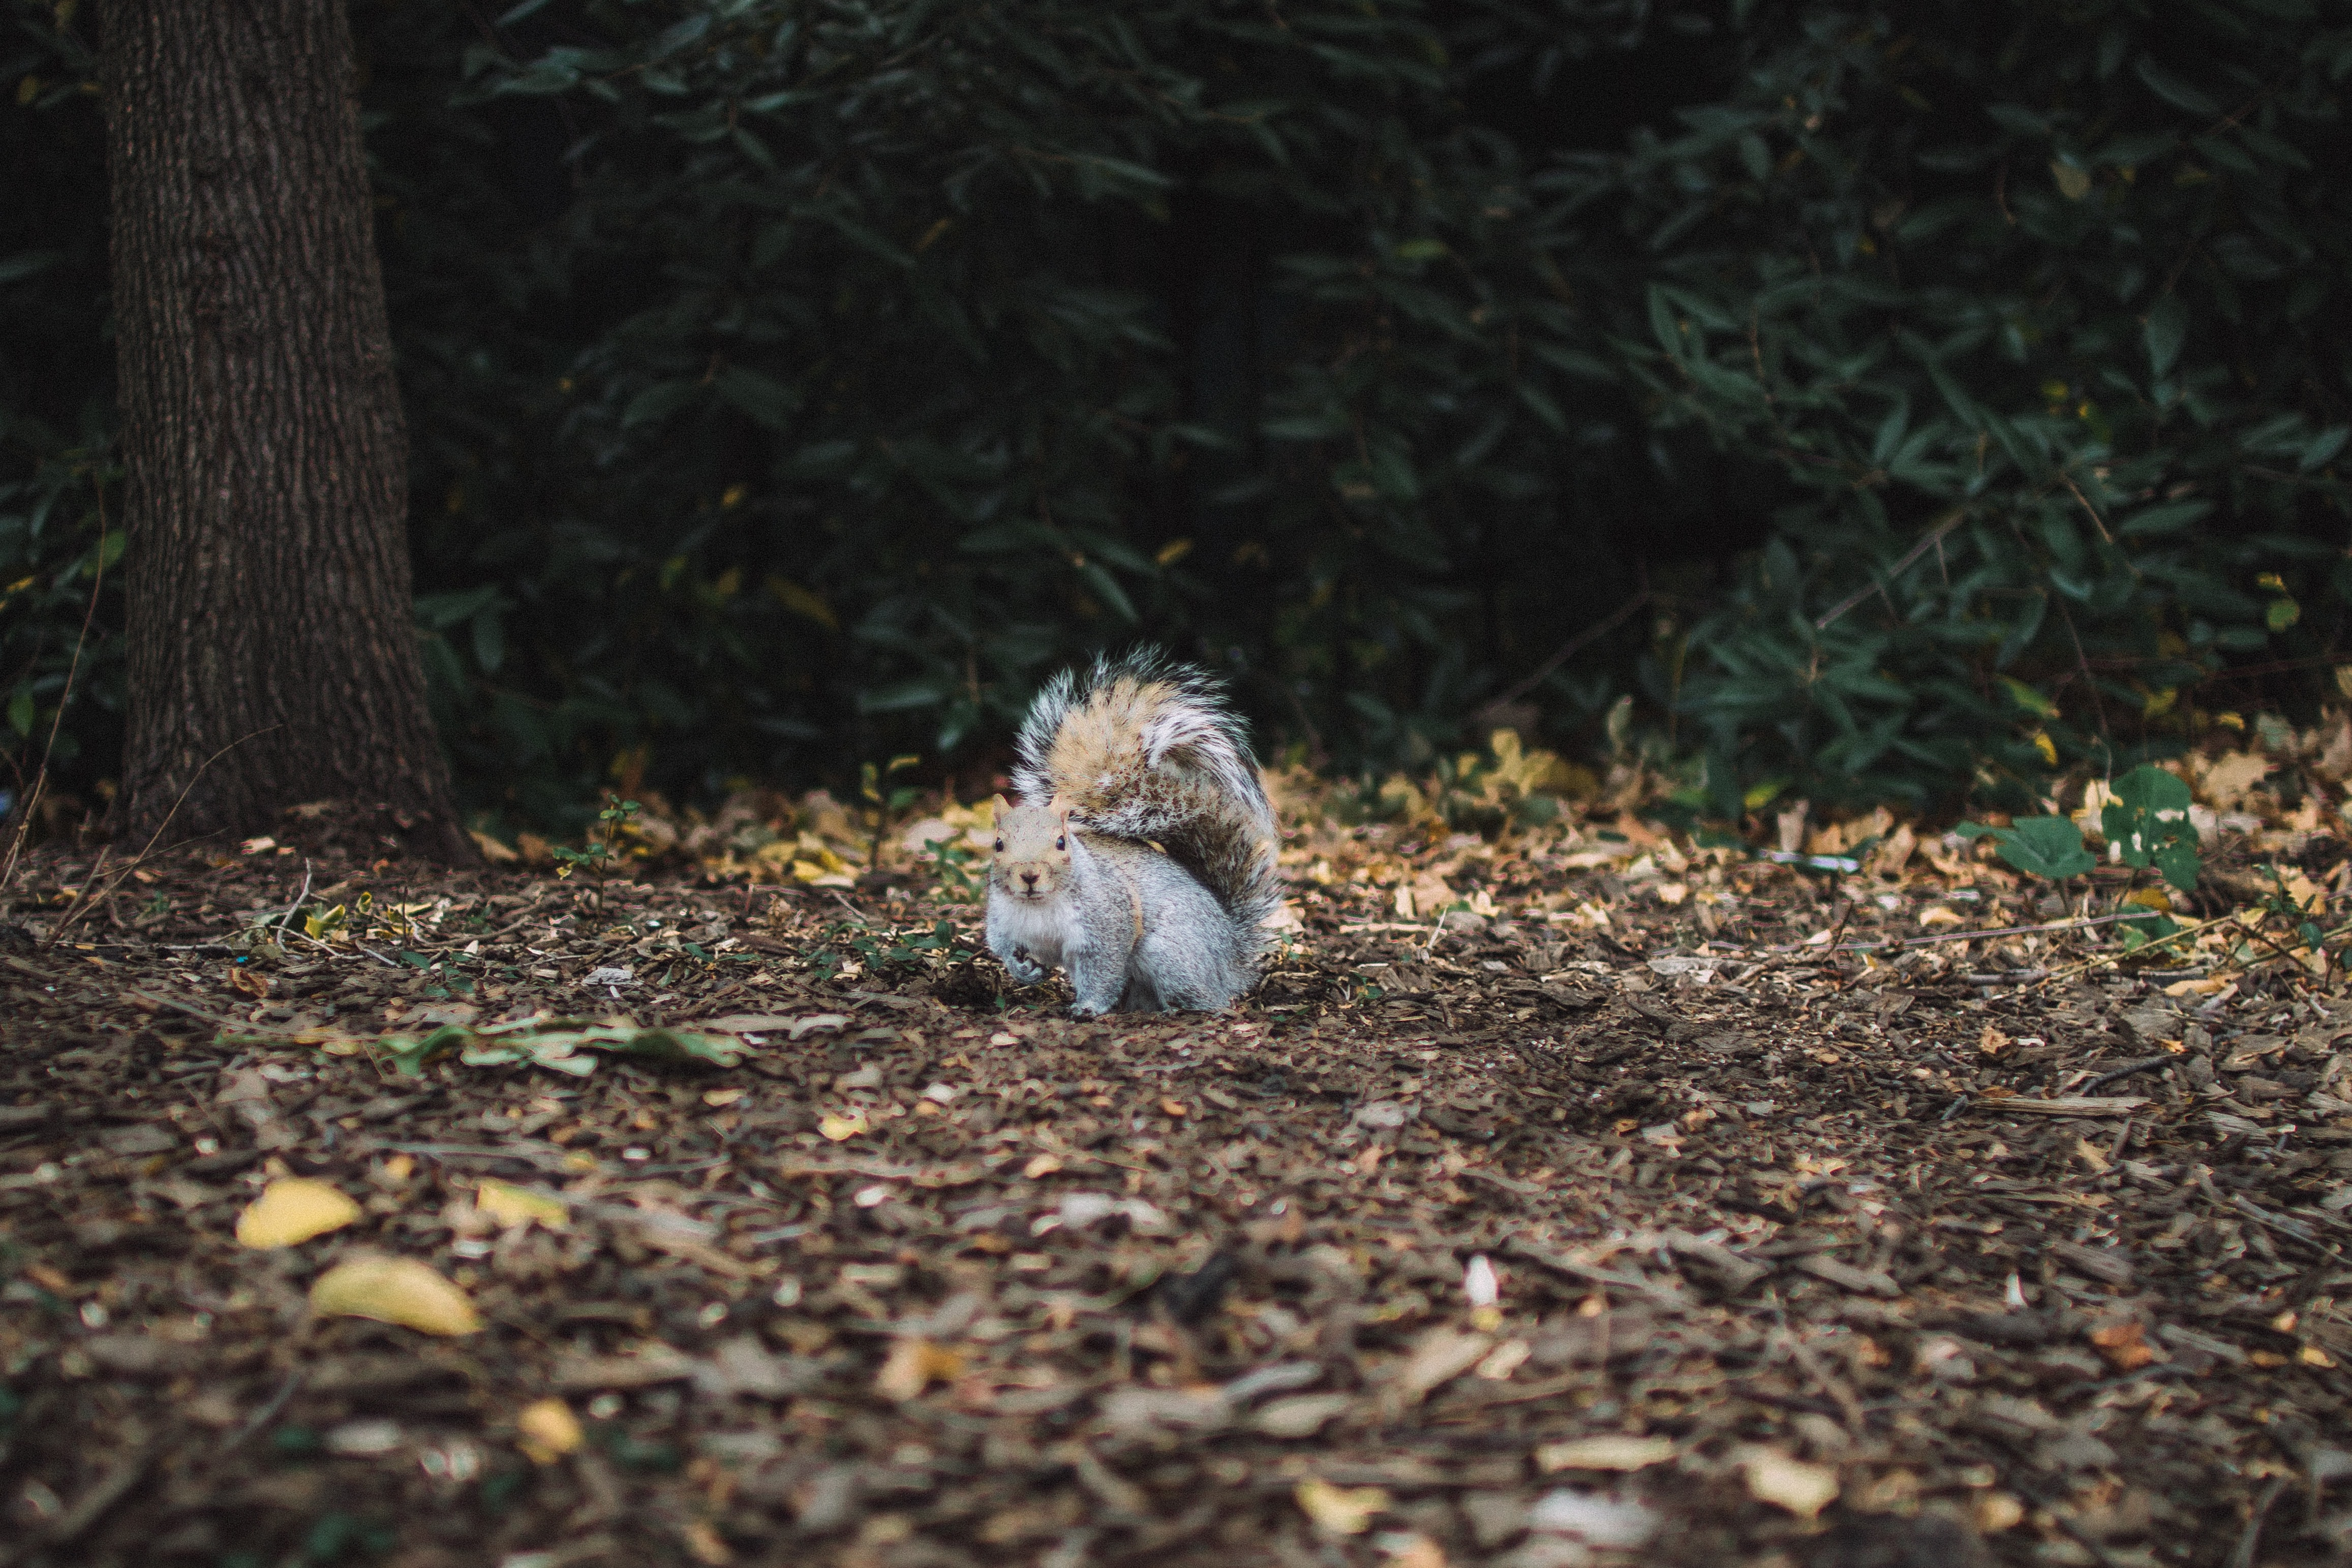 A squirrel looking up in surprise surrounded by fallen leaves and pieces of bark on the forest floor